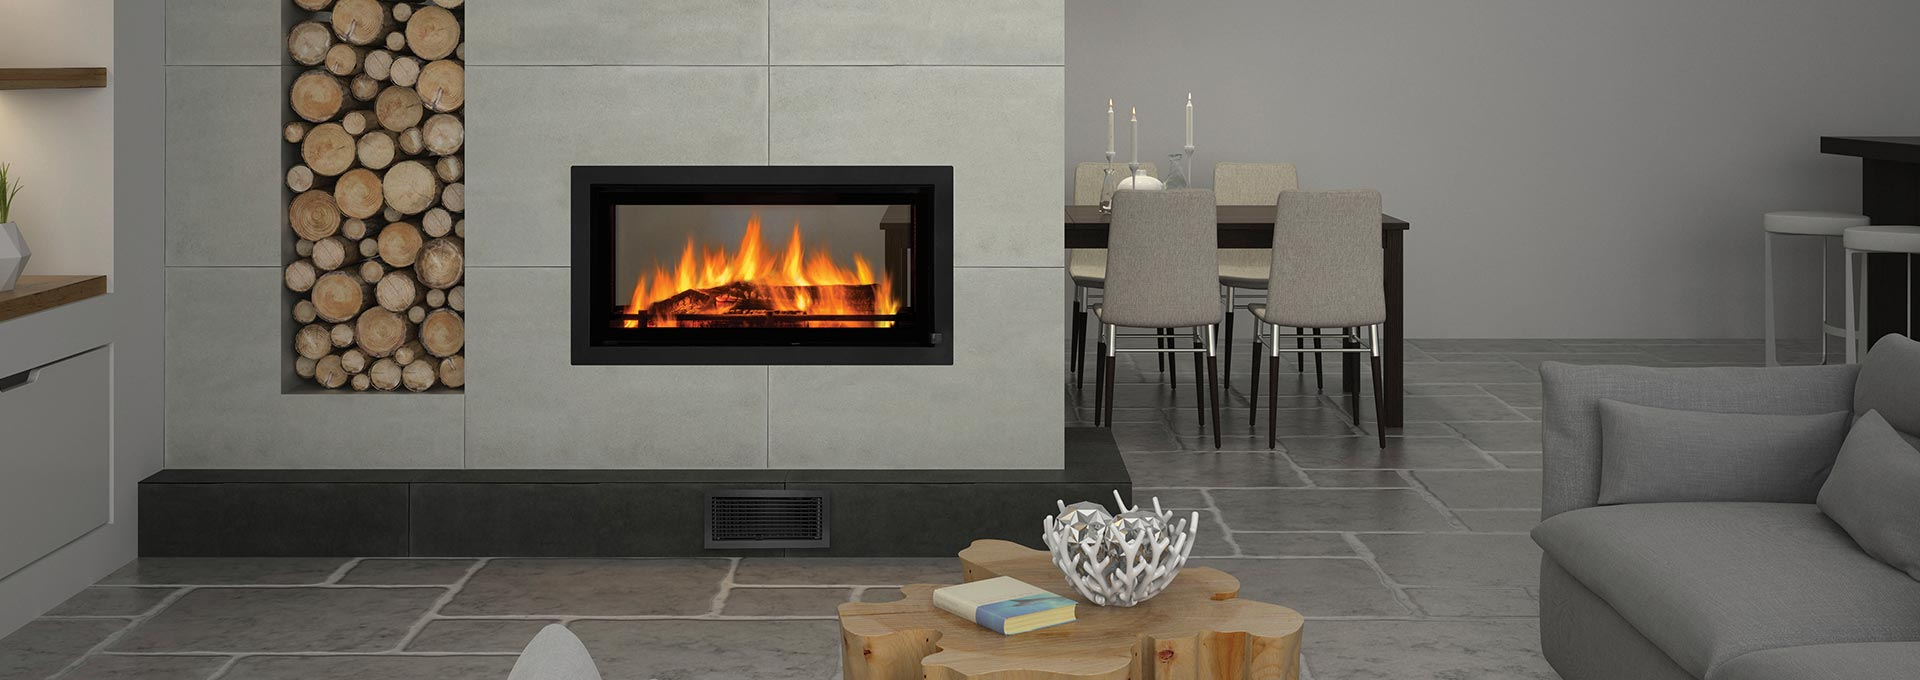 napoleon place through fireplace lifestyle built logs clearion in fire electric see thru products